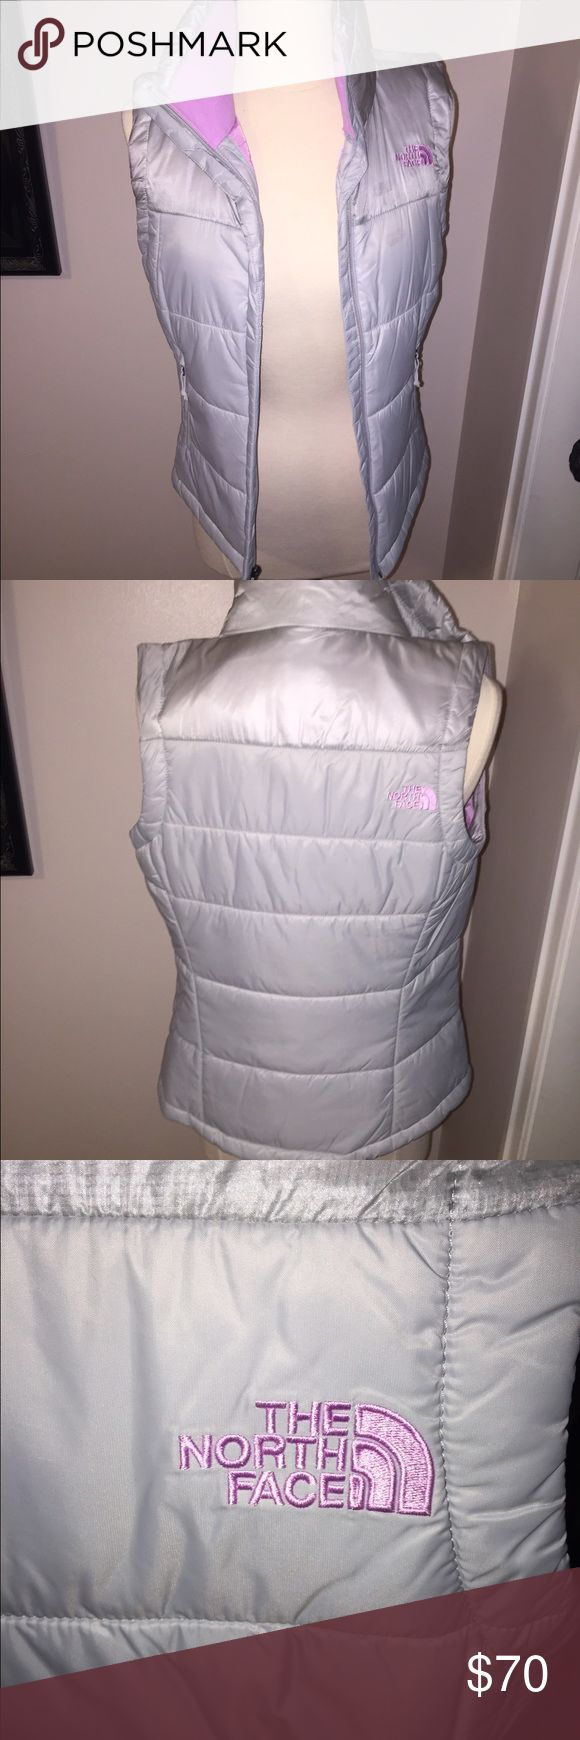 The North Face Vest The North Face silver vest with pink, fleece lining on the interior. Worn once. Size XS. Great condition. WILLING TO NEGOTIATE PRICE! ☺️ The North Face Jackets & Coats Vests